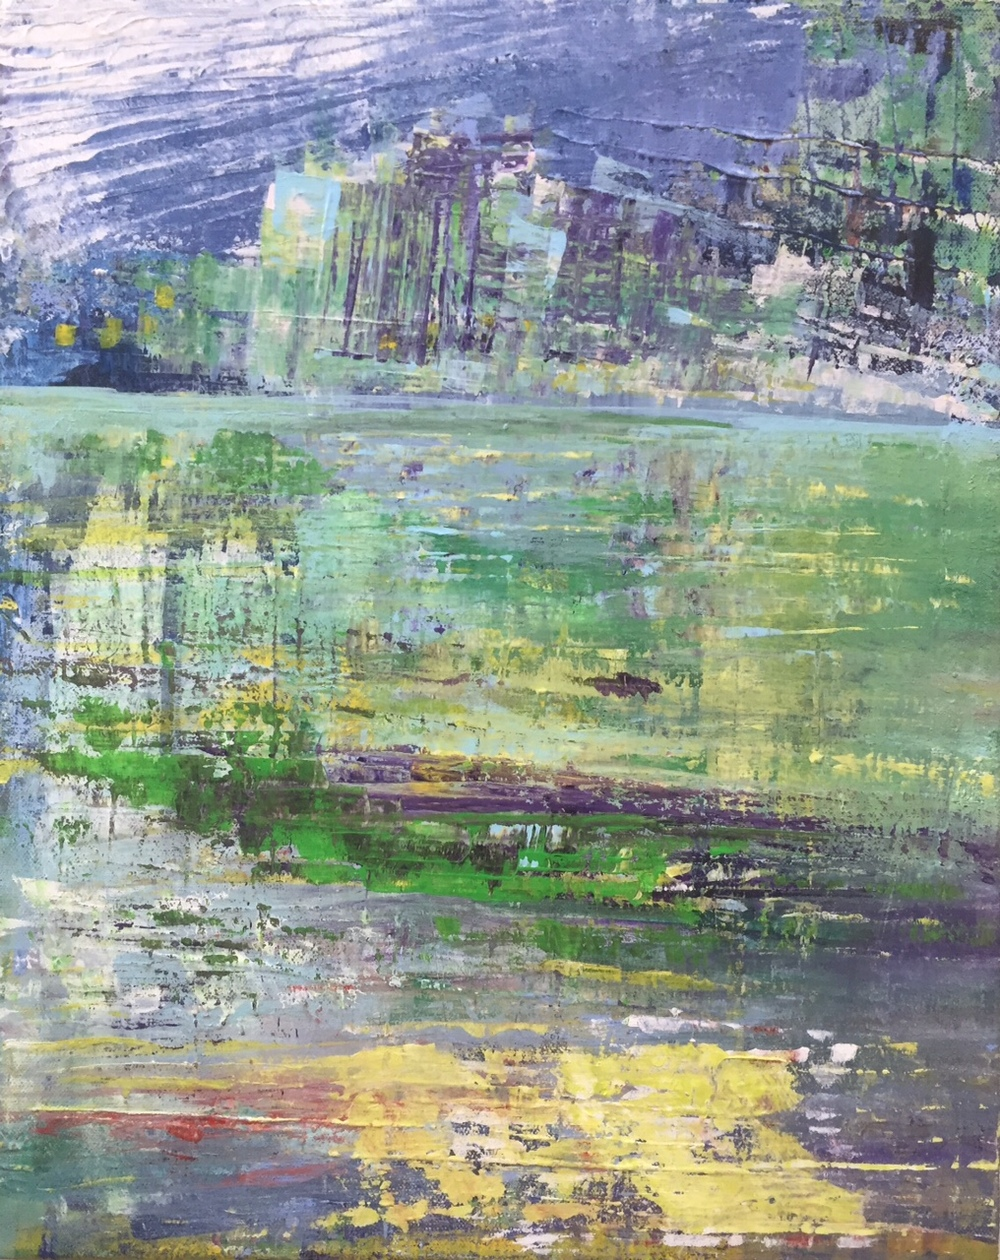 Lake 2015 - Acrylic on Canvas  - 40x50cms